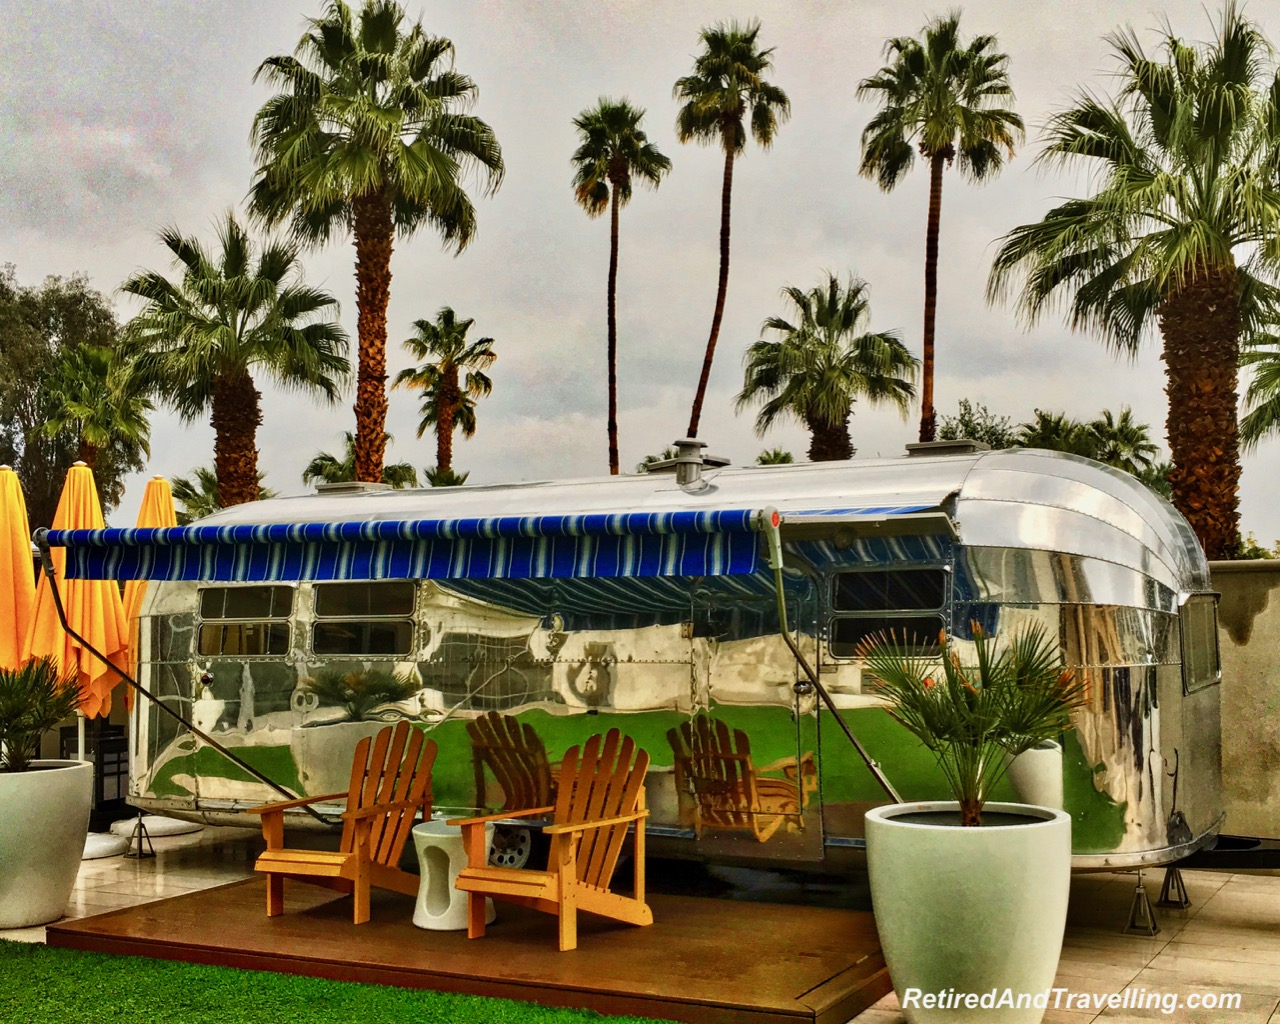 Hotel Paseo Palm Desert Airstream.jpg